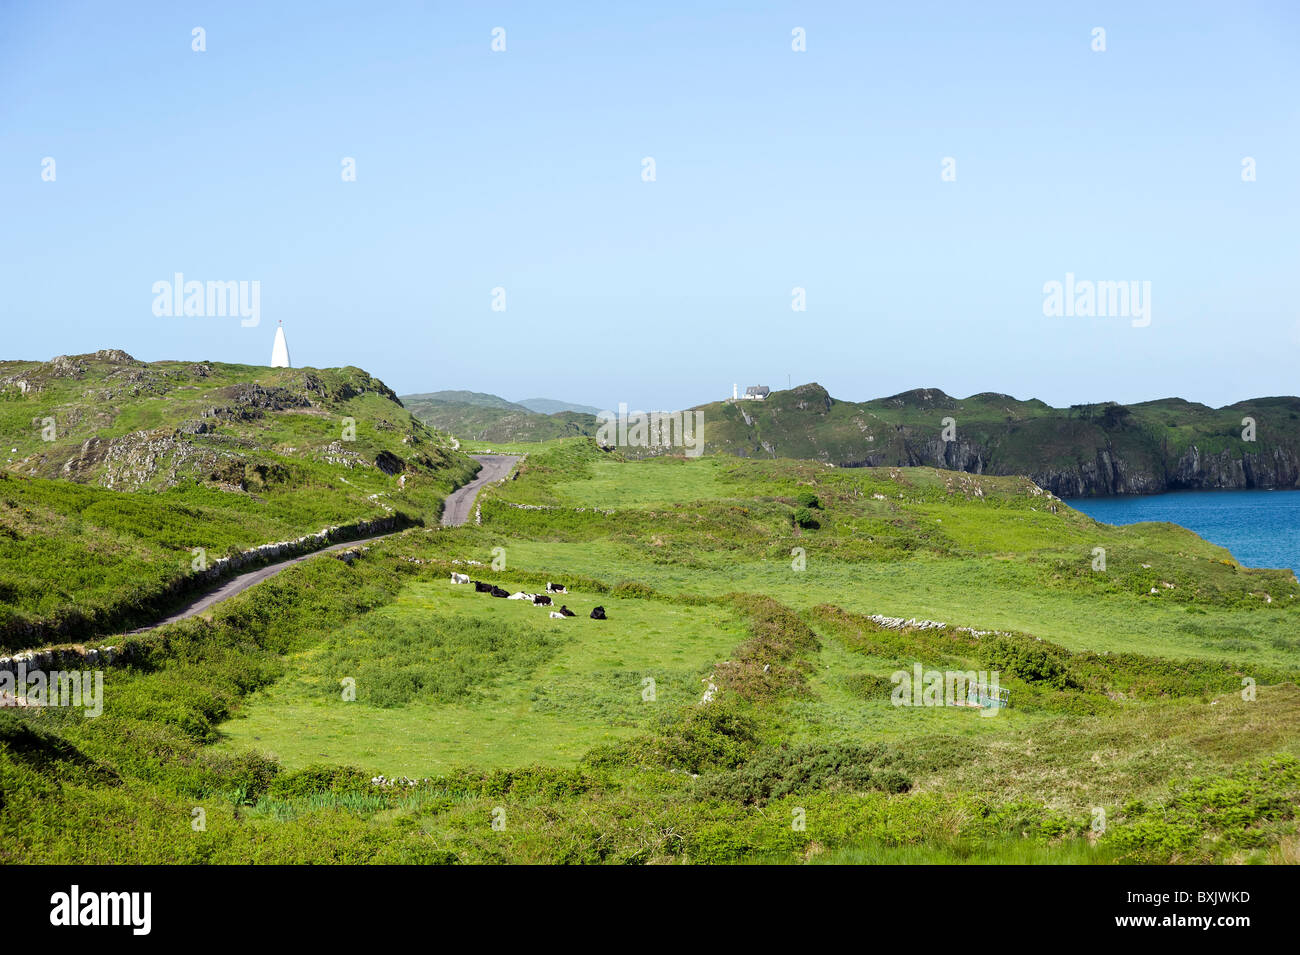 Baltimore, County Cork, Ireland - Stock Image